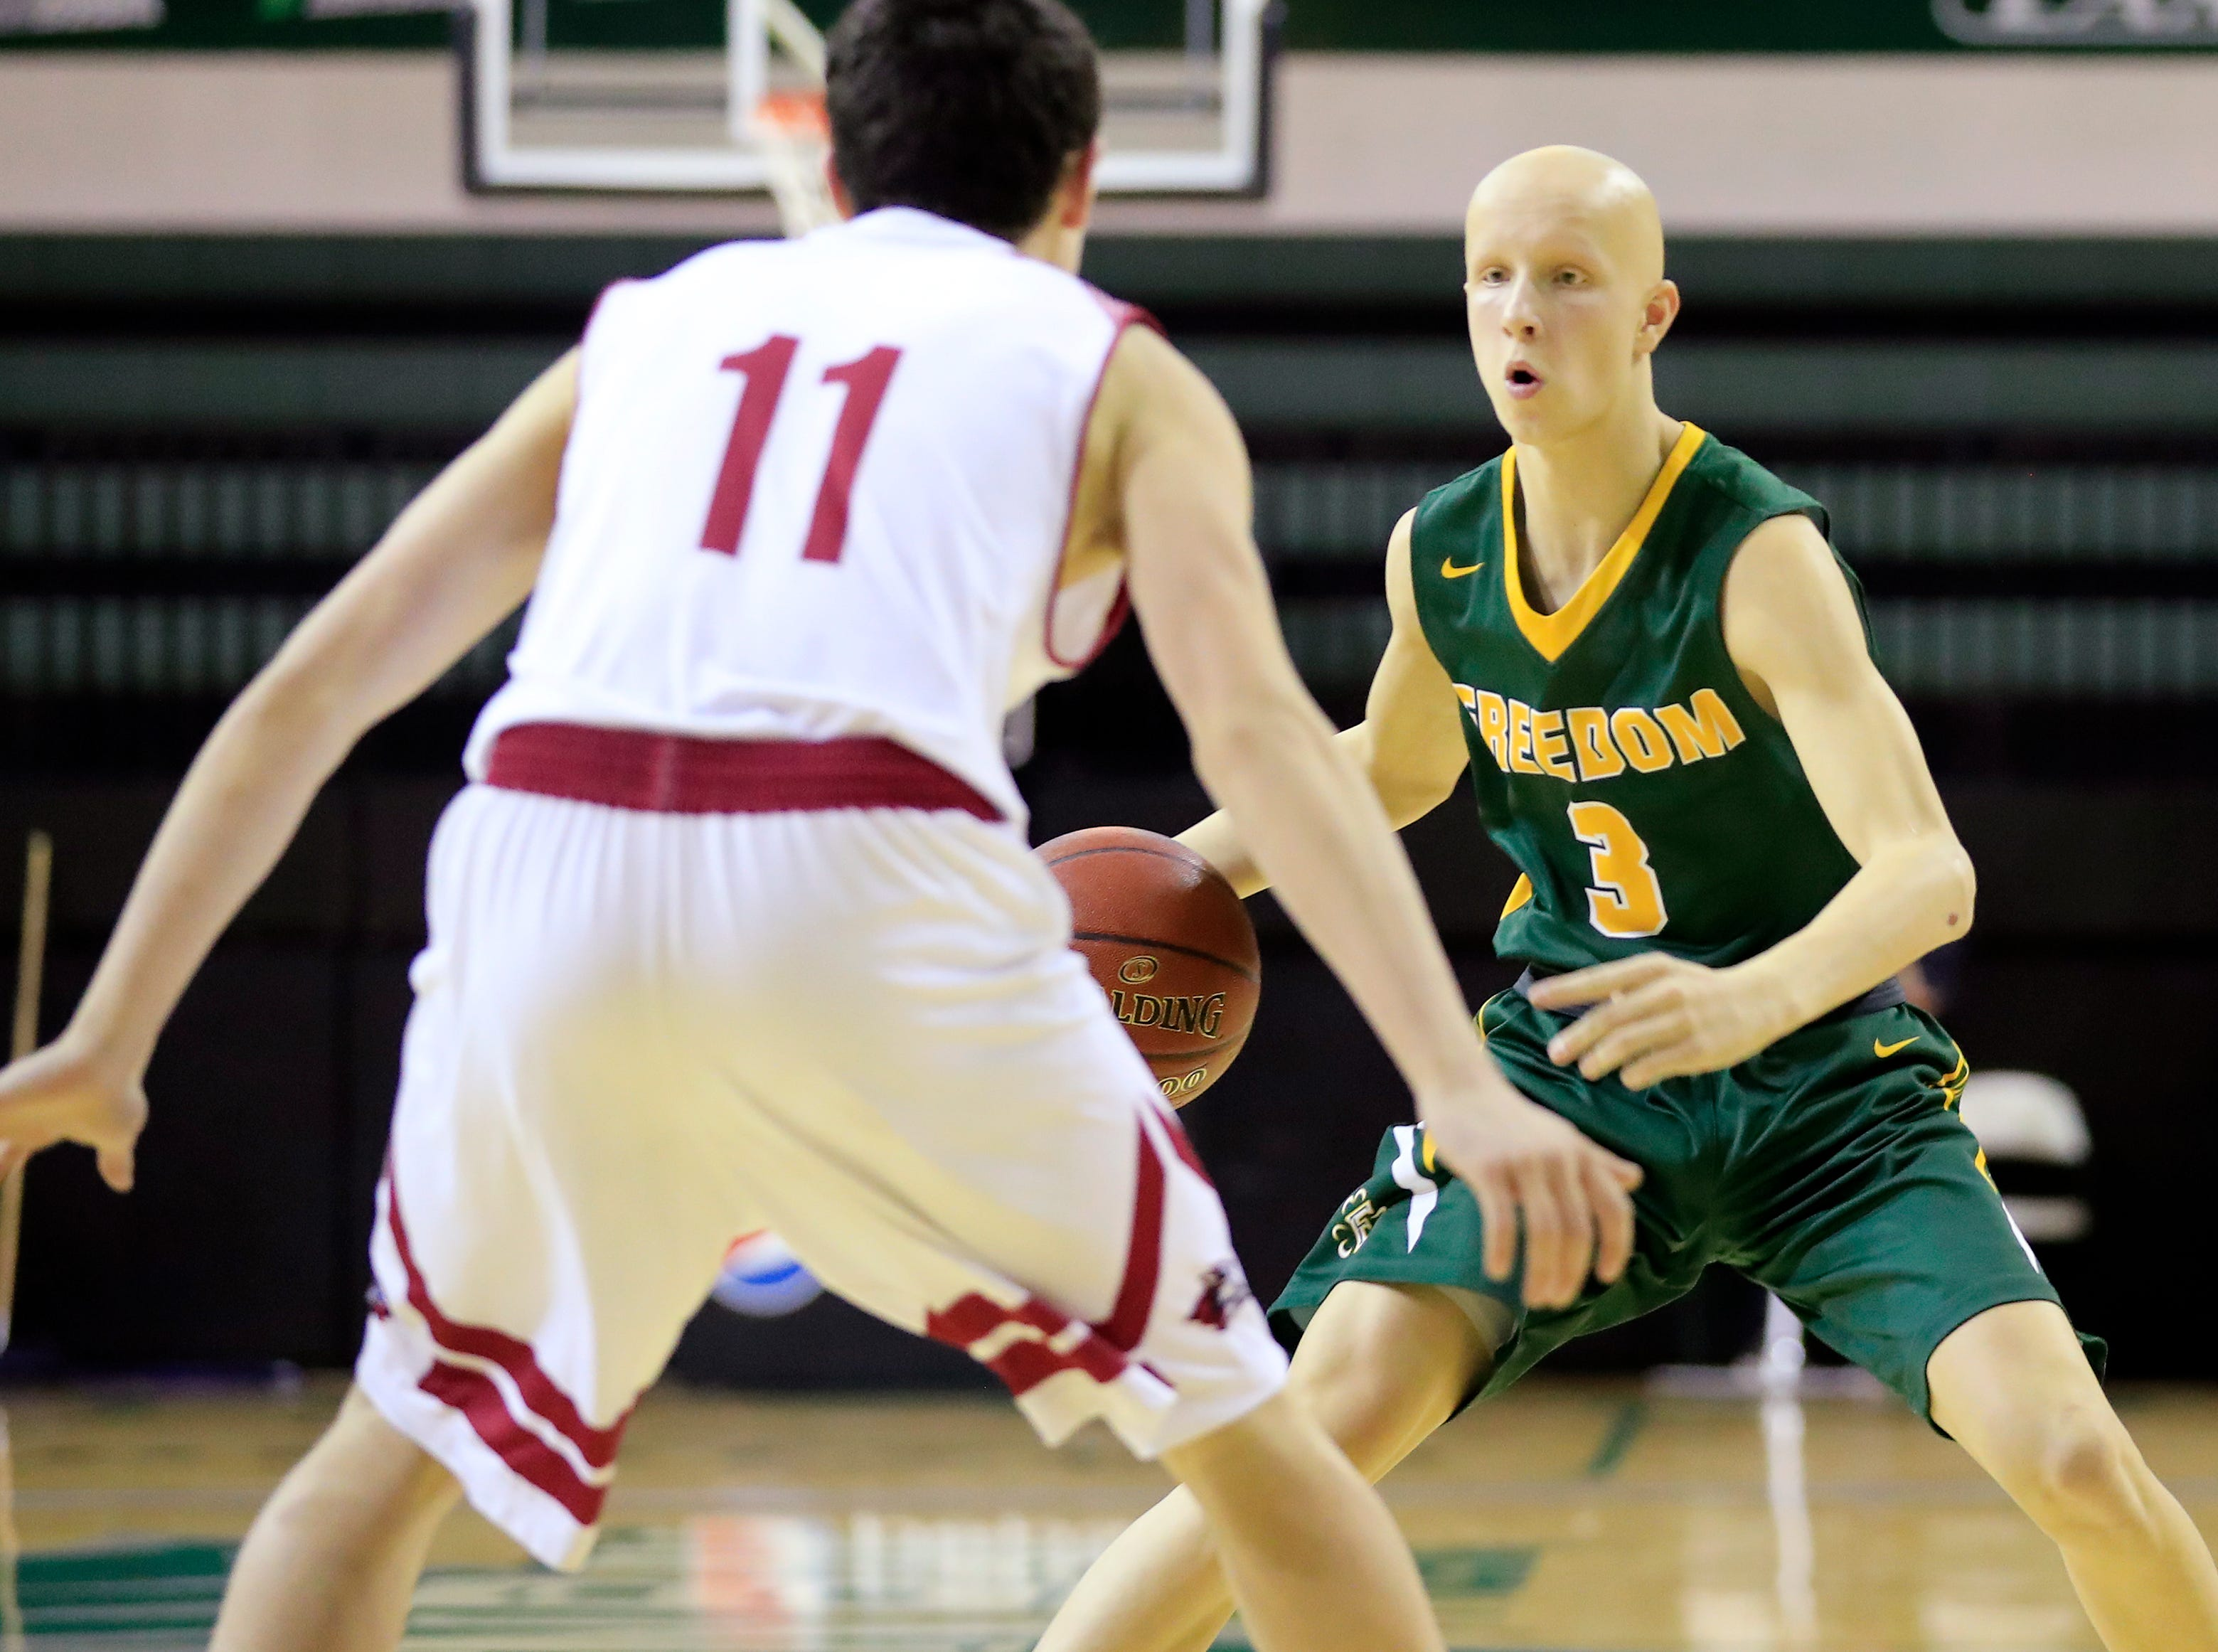 Freedom's Austin Balck (3) dribbles against New Holstein at the Sun Drop Shootout at the Kress Center on Thursday, December 27, 2018 in Green Bay, Wis.